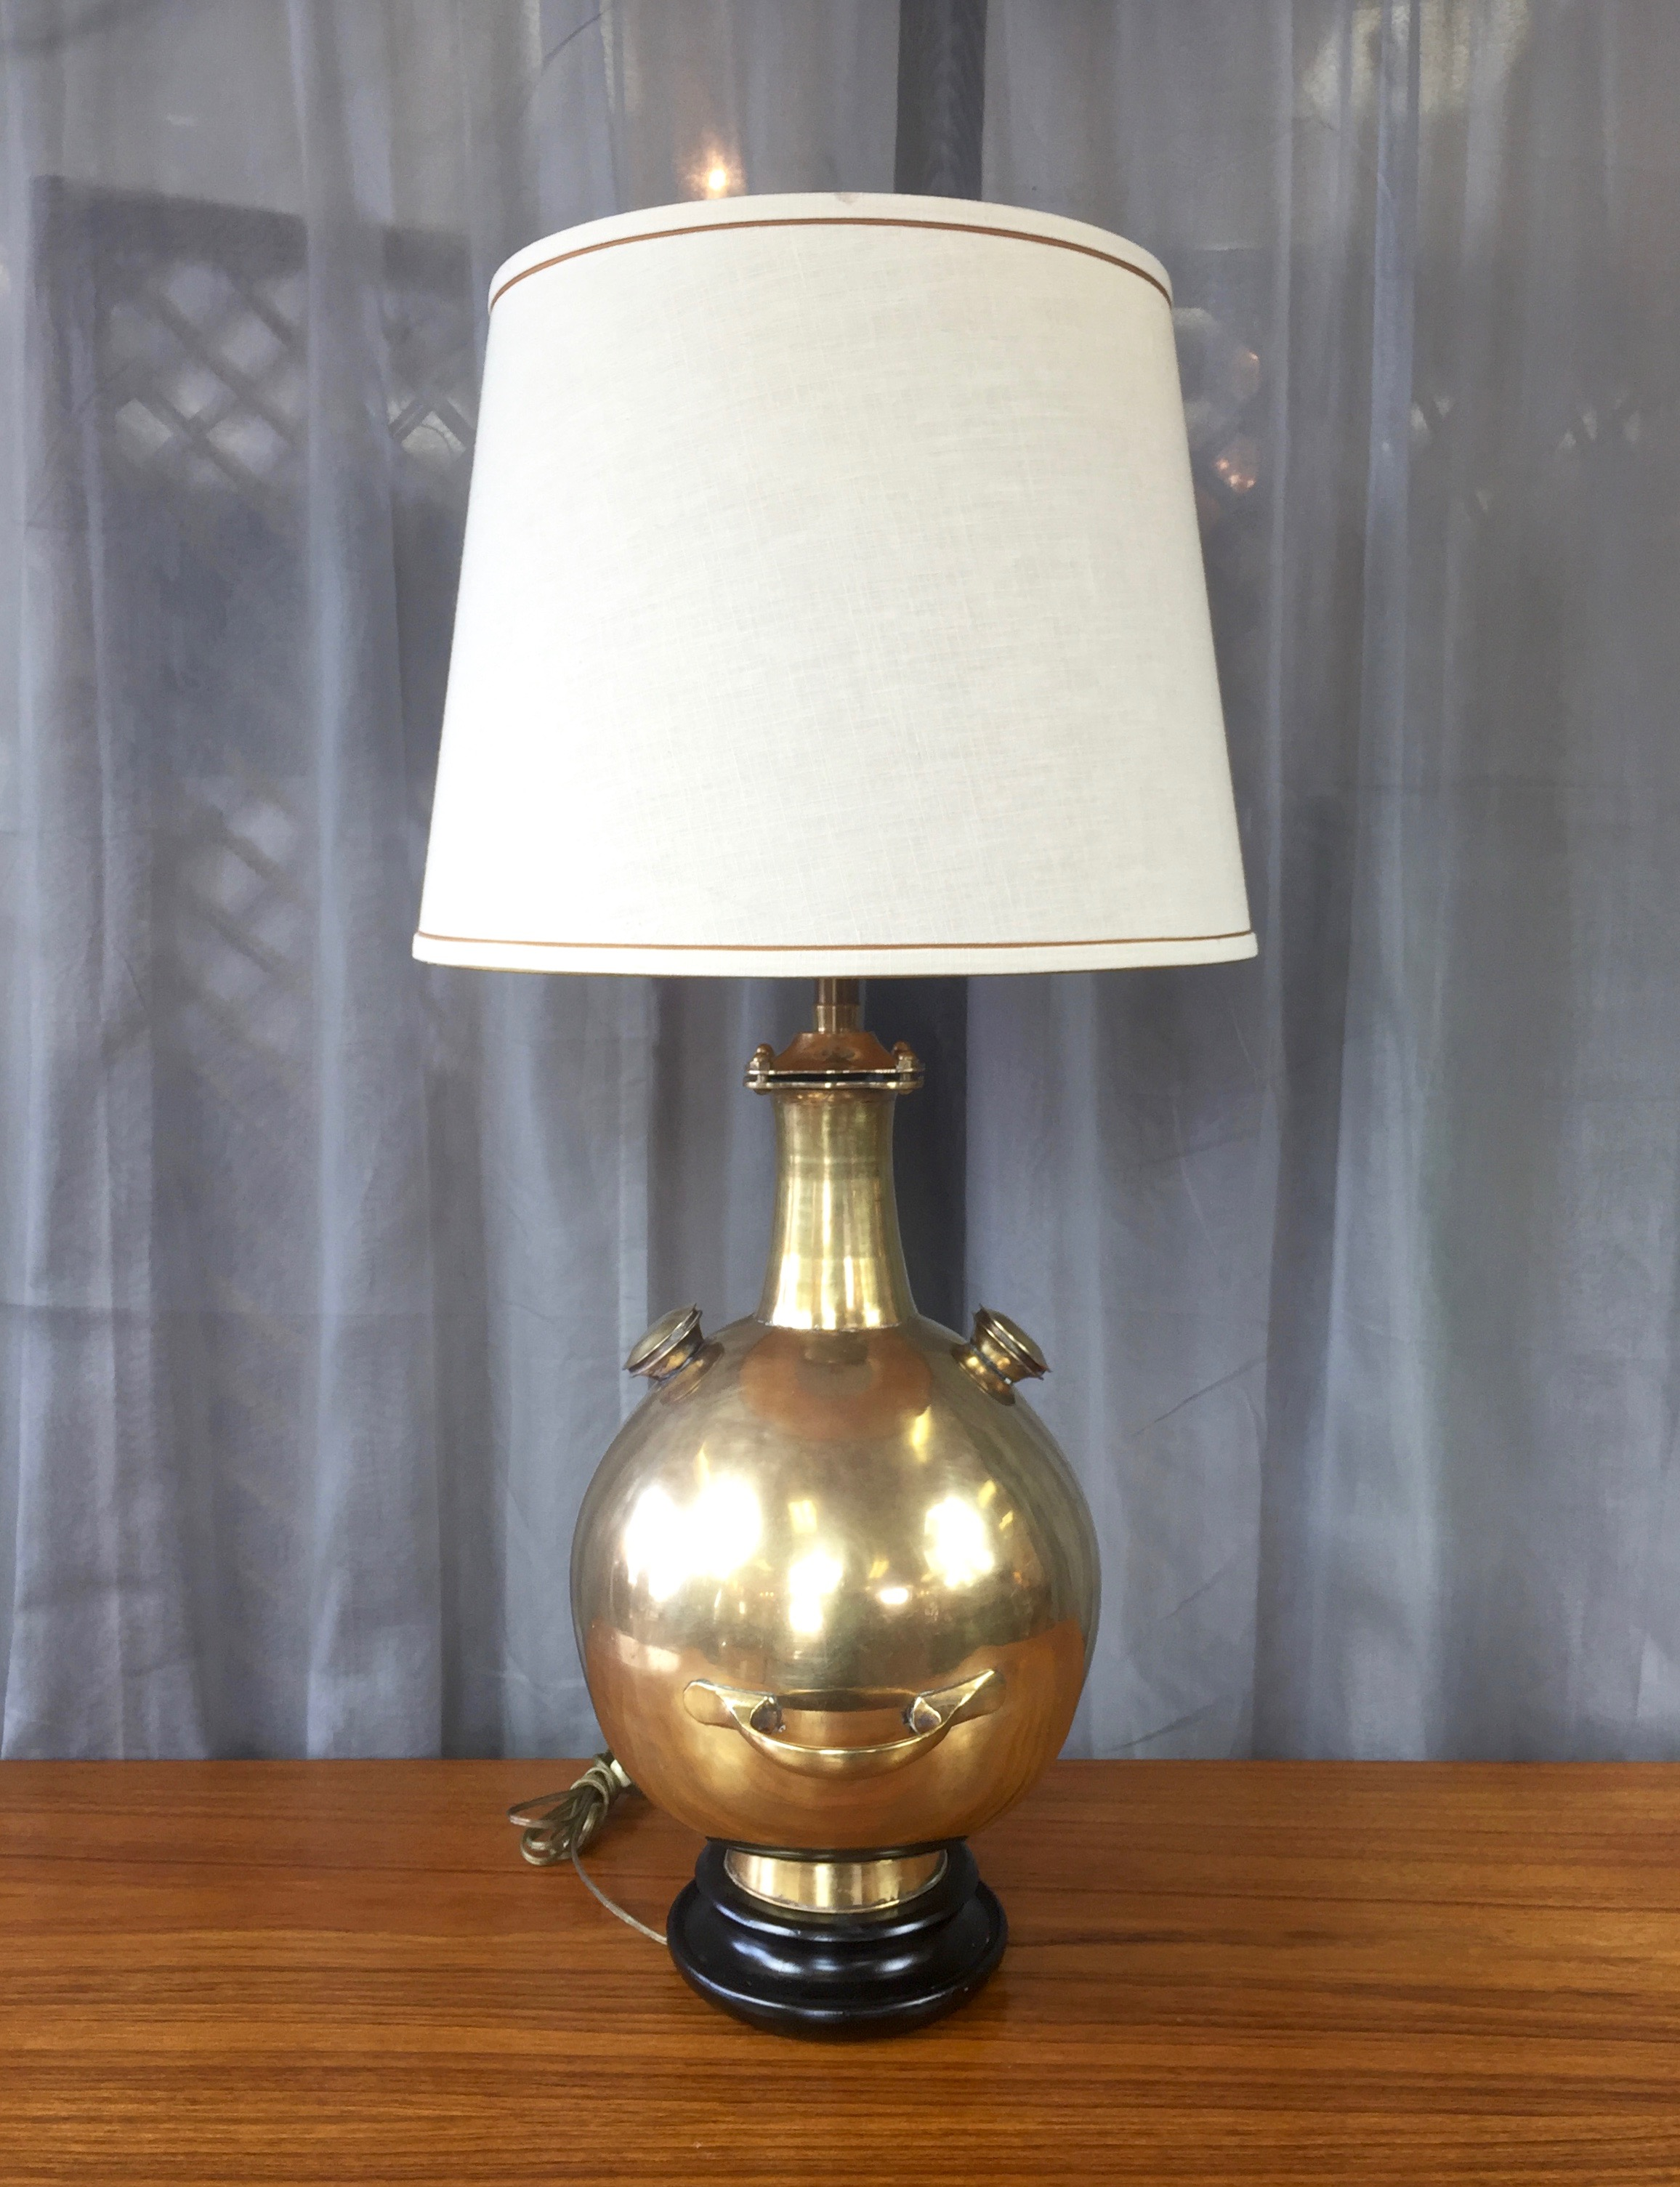 Rare And Monumental Marbro Brass Diving Bell Table Lamp Sold Past Perfect